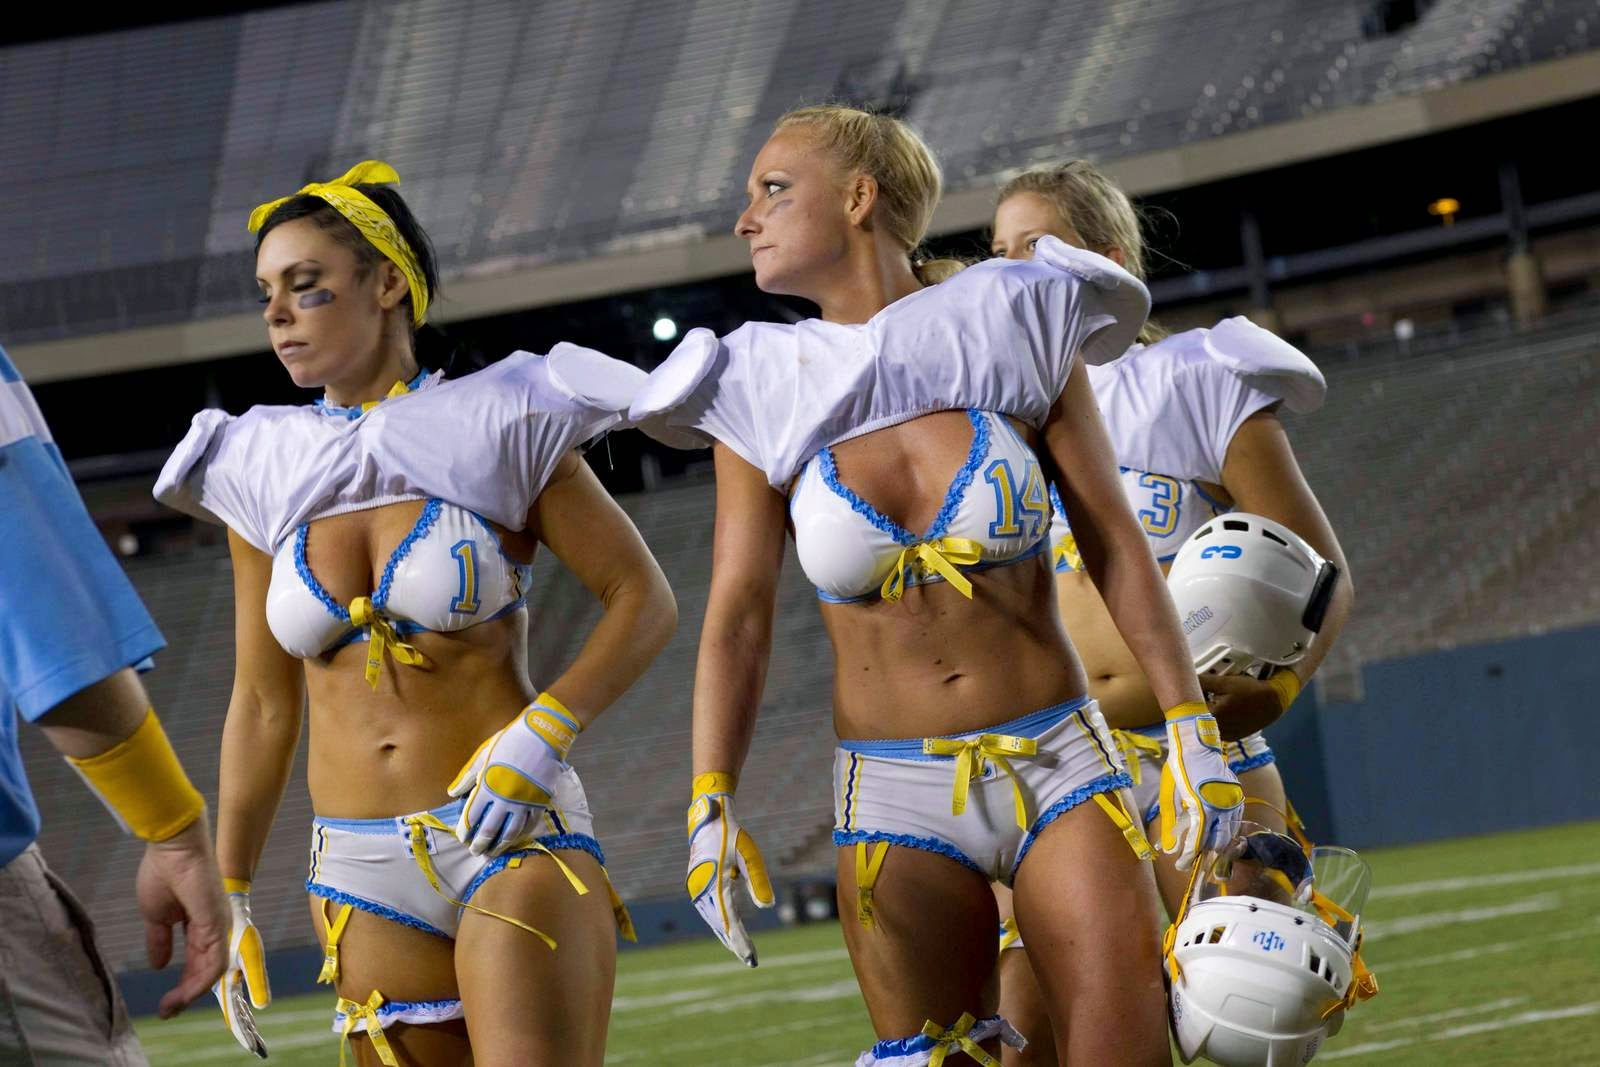 football nude lingerie female